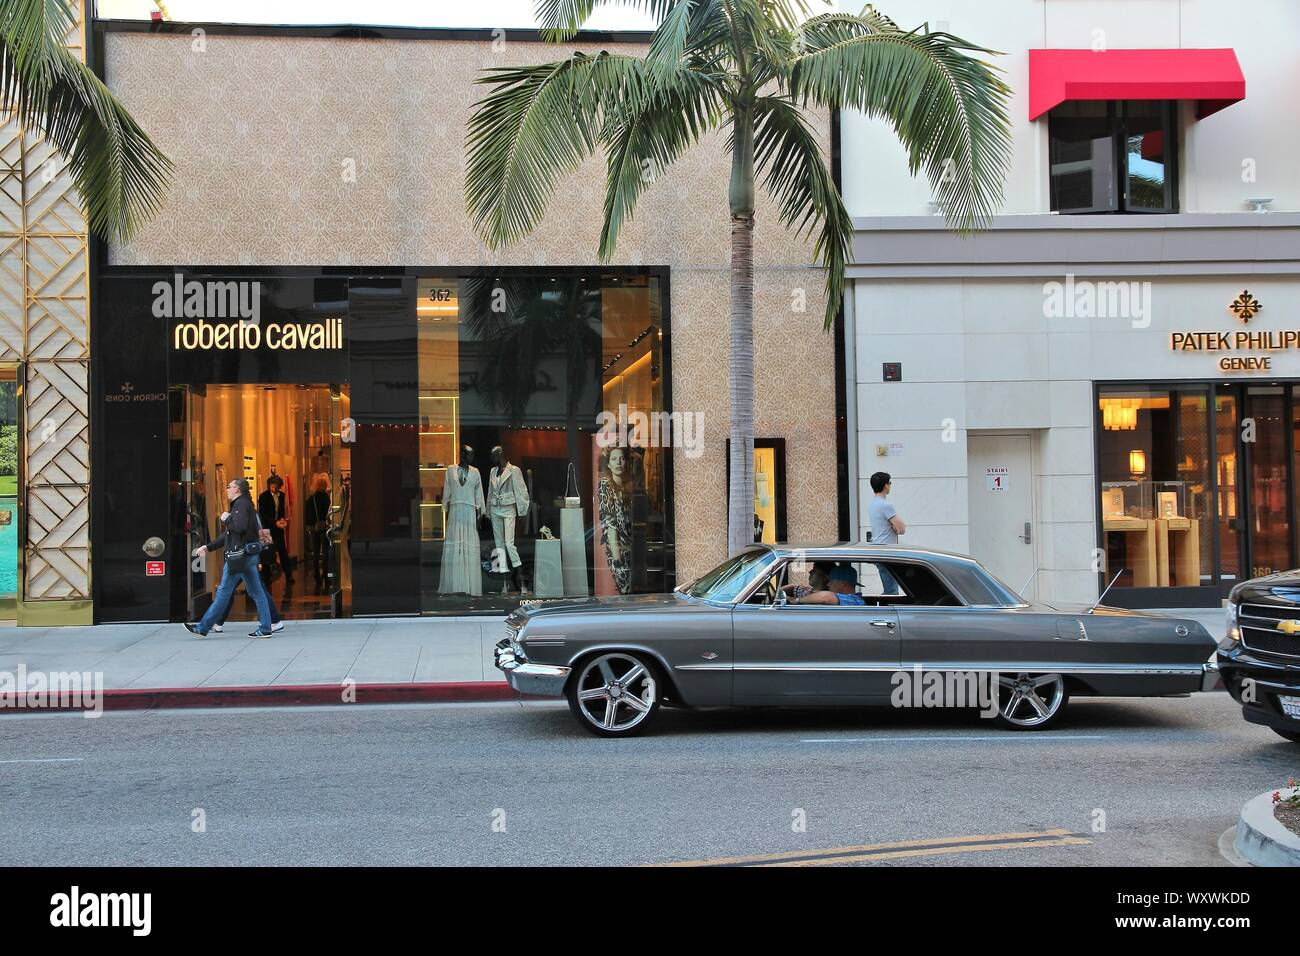 LOS ANGELES, USA - APRIL 5, 2014: People walk in Beverly Hills, Los Angeles. Beverly Hills is a district of upscale shopping and rich celebrities. Stock Photo